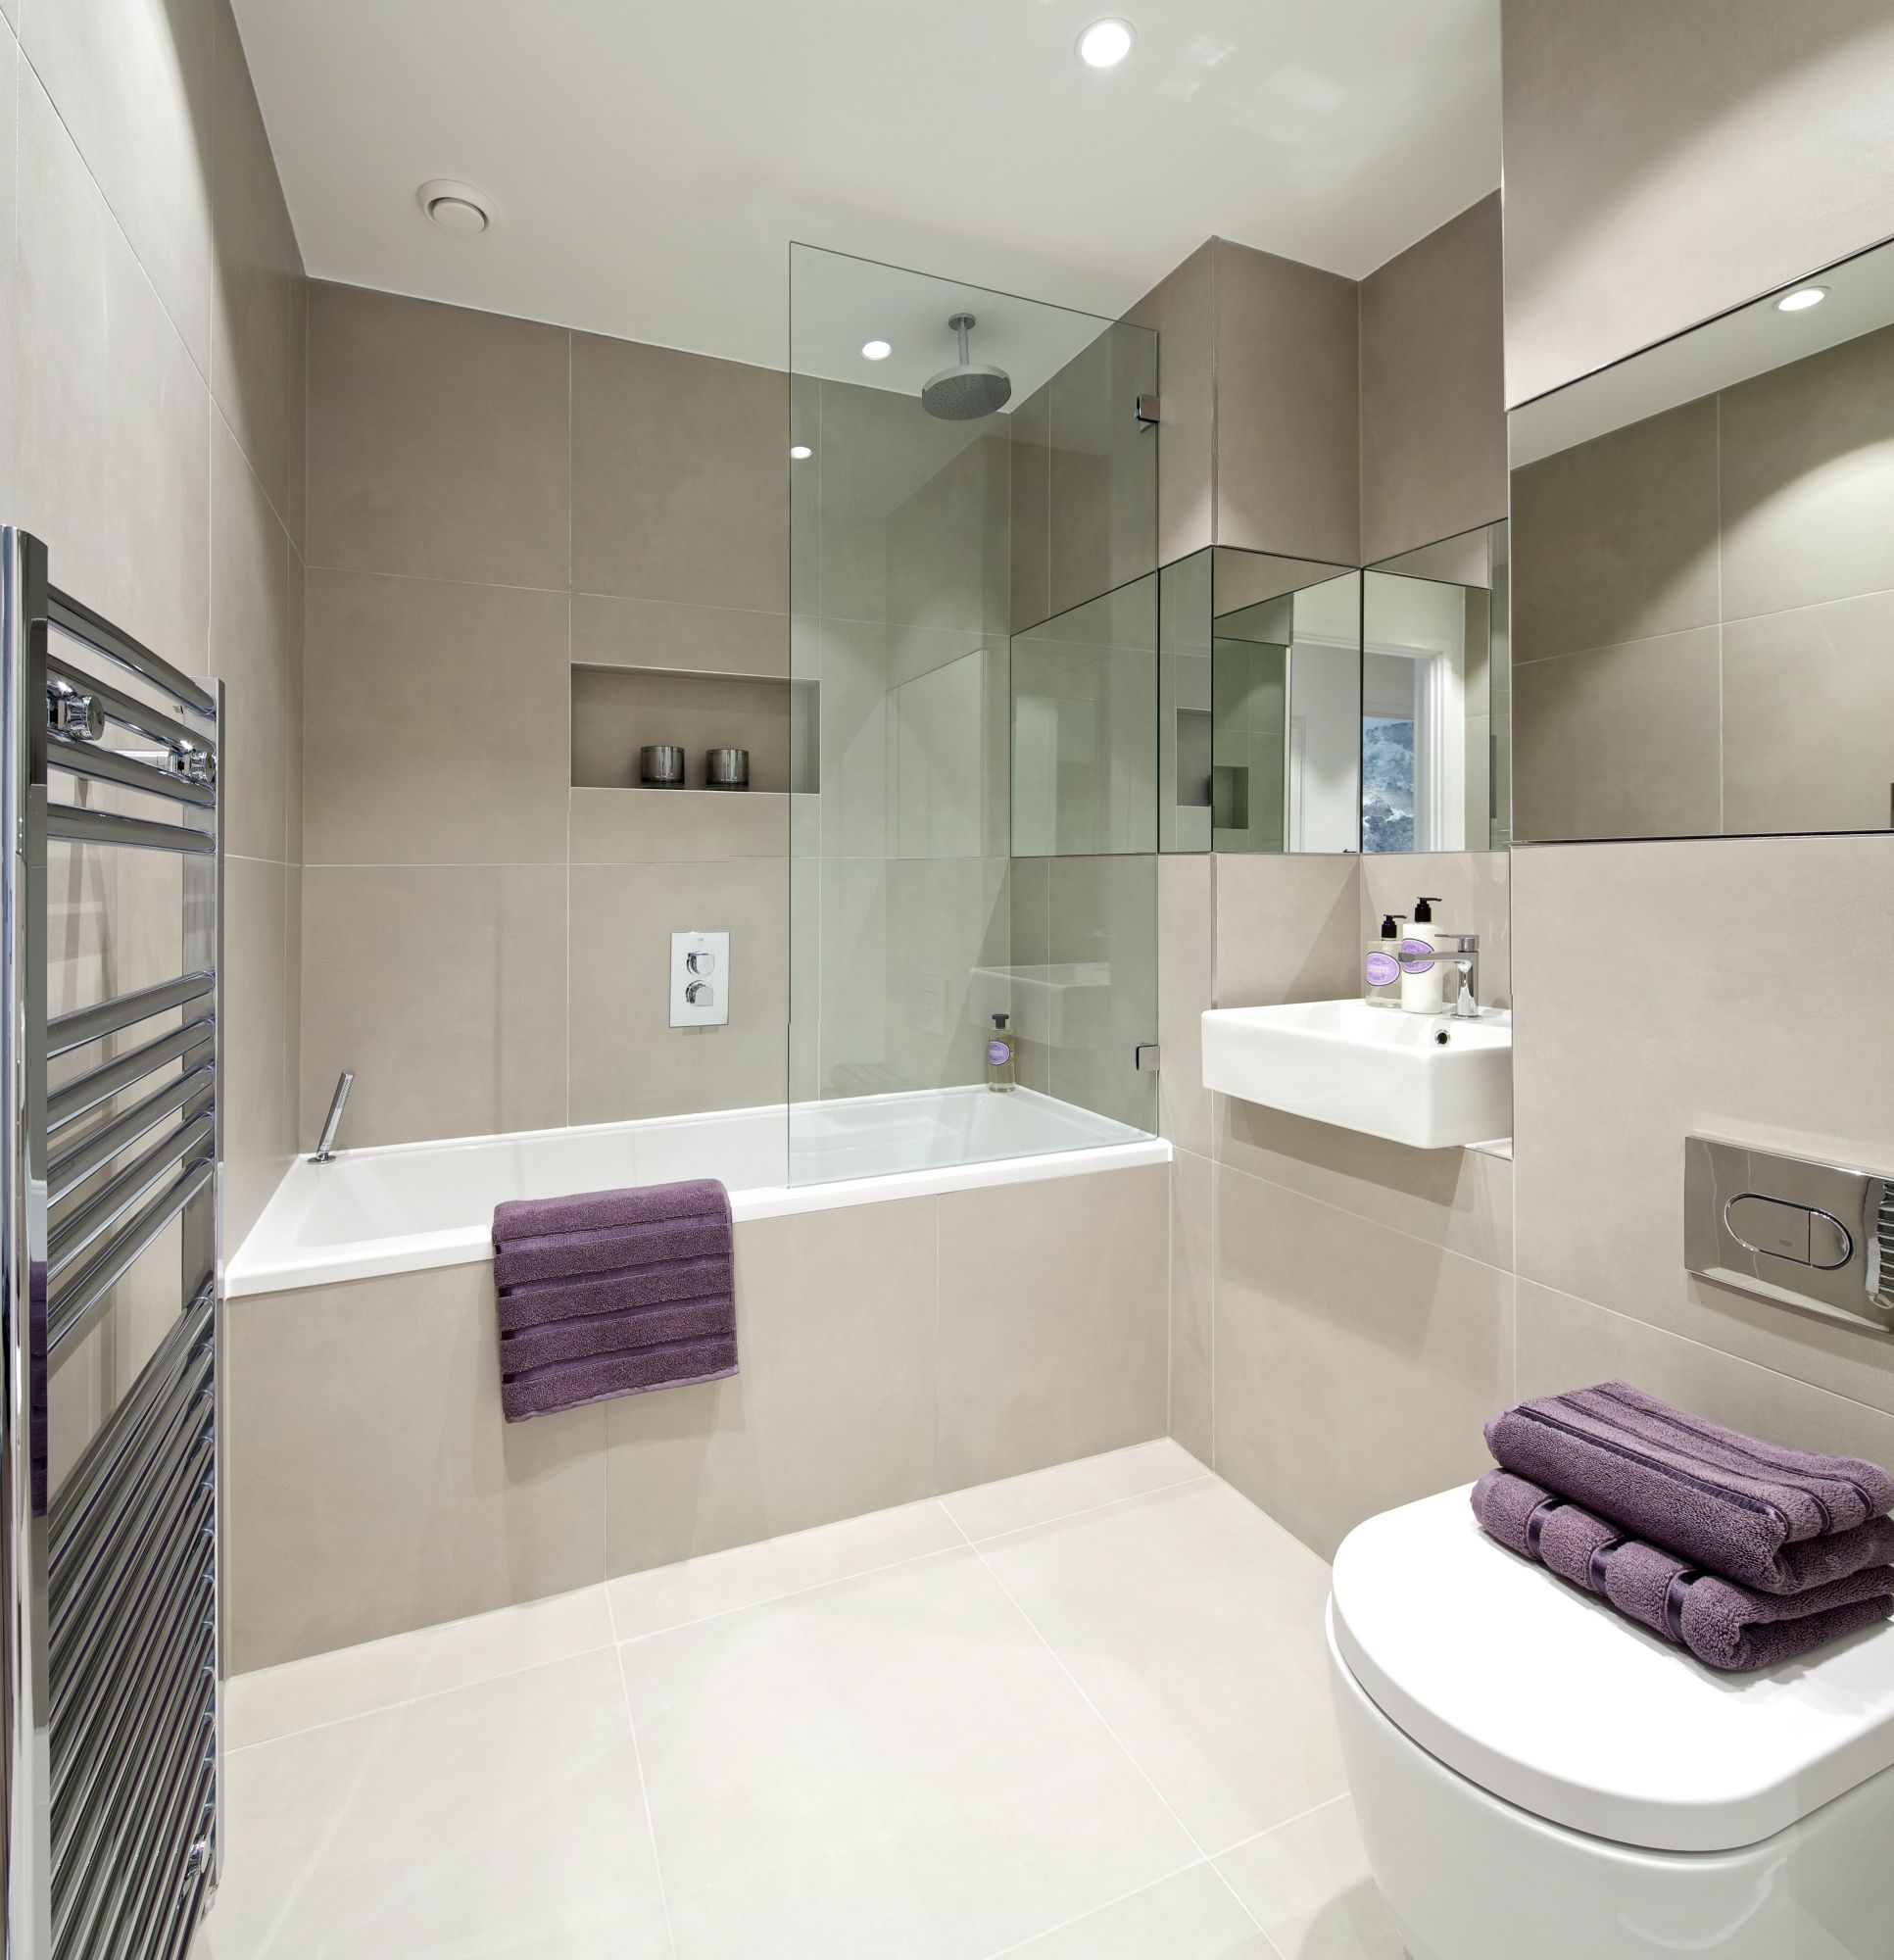 Stunning home interiors bathroom another stunning show for Stunning bathroom designs